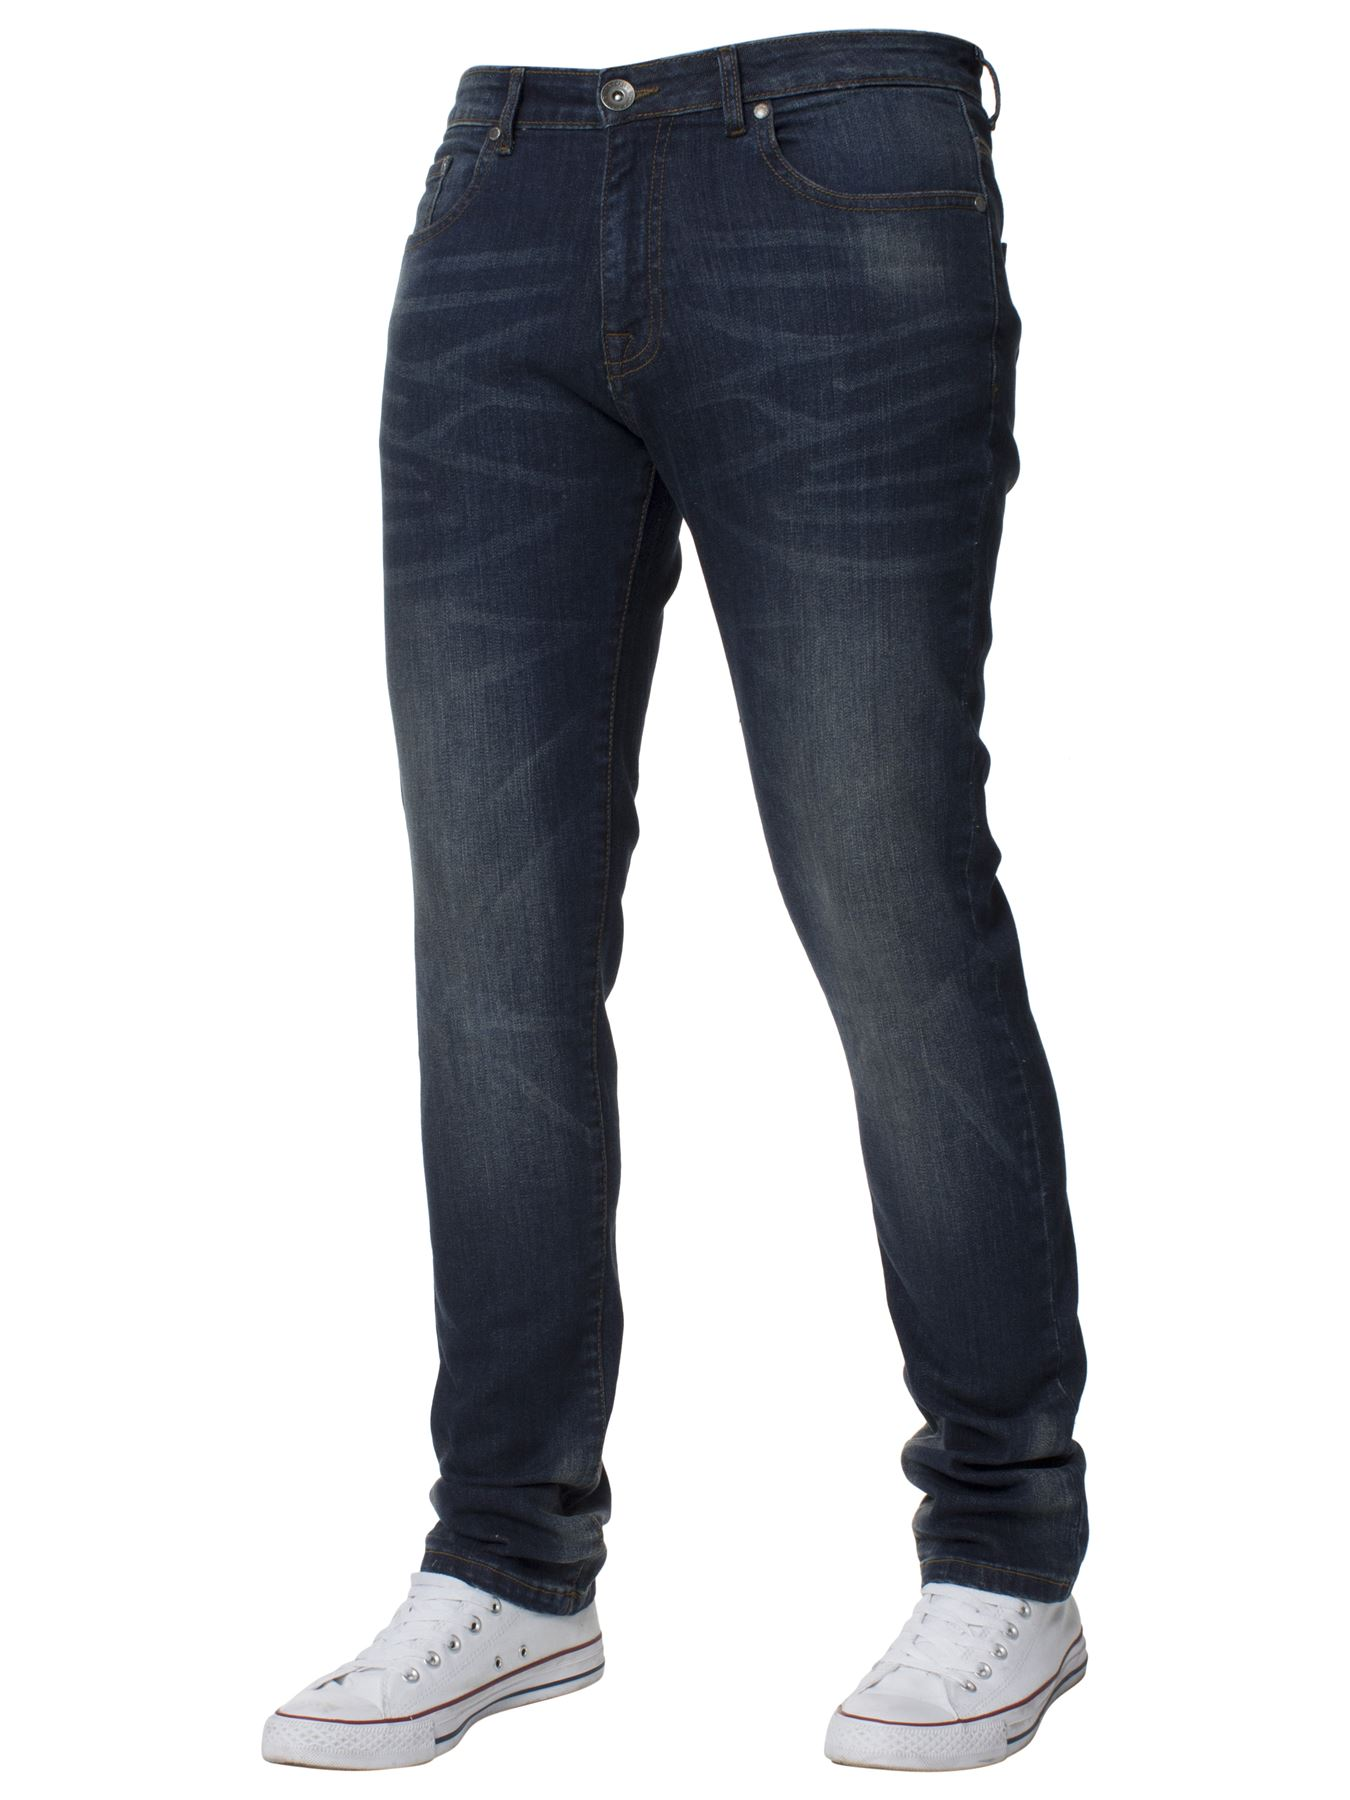 Kruze-Mens-Skinny-Stretch-Flex-Denim-Jeans-Slim-Fit-Trouser-Pants-Big-King-Sizes thumbnail 15